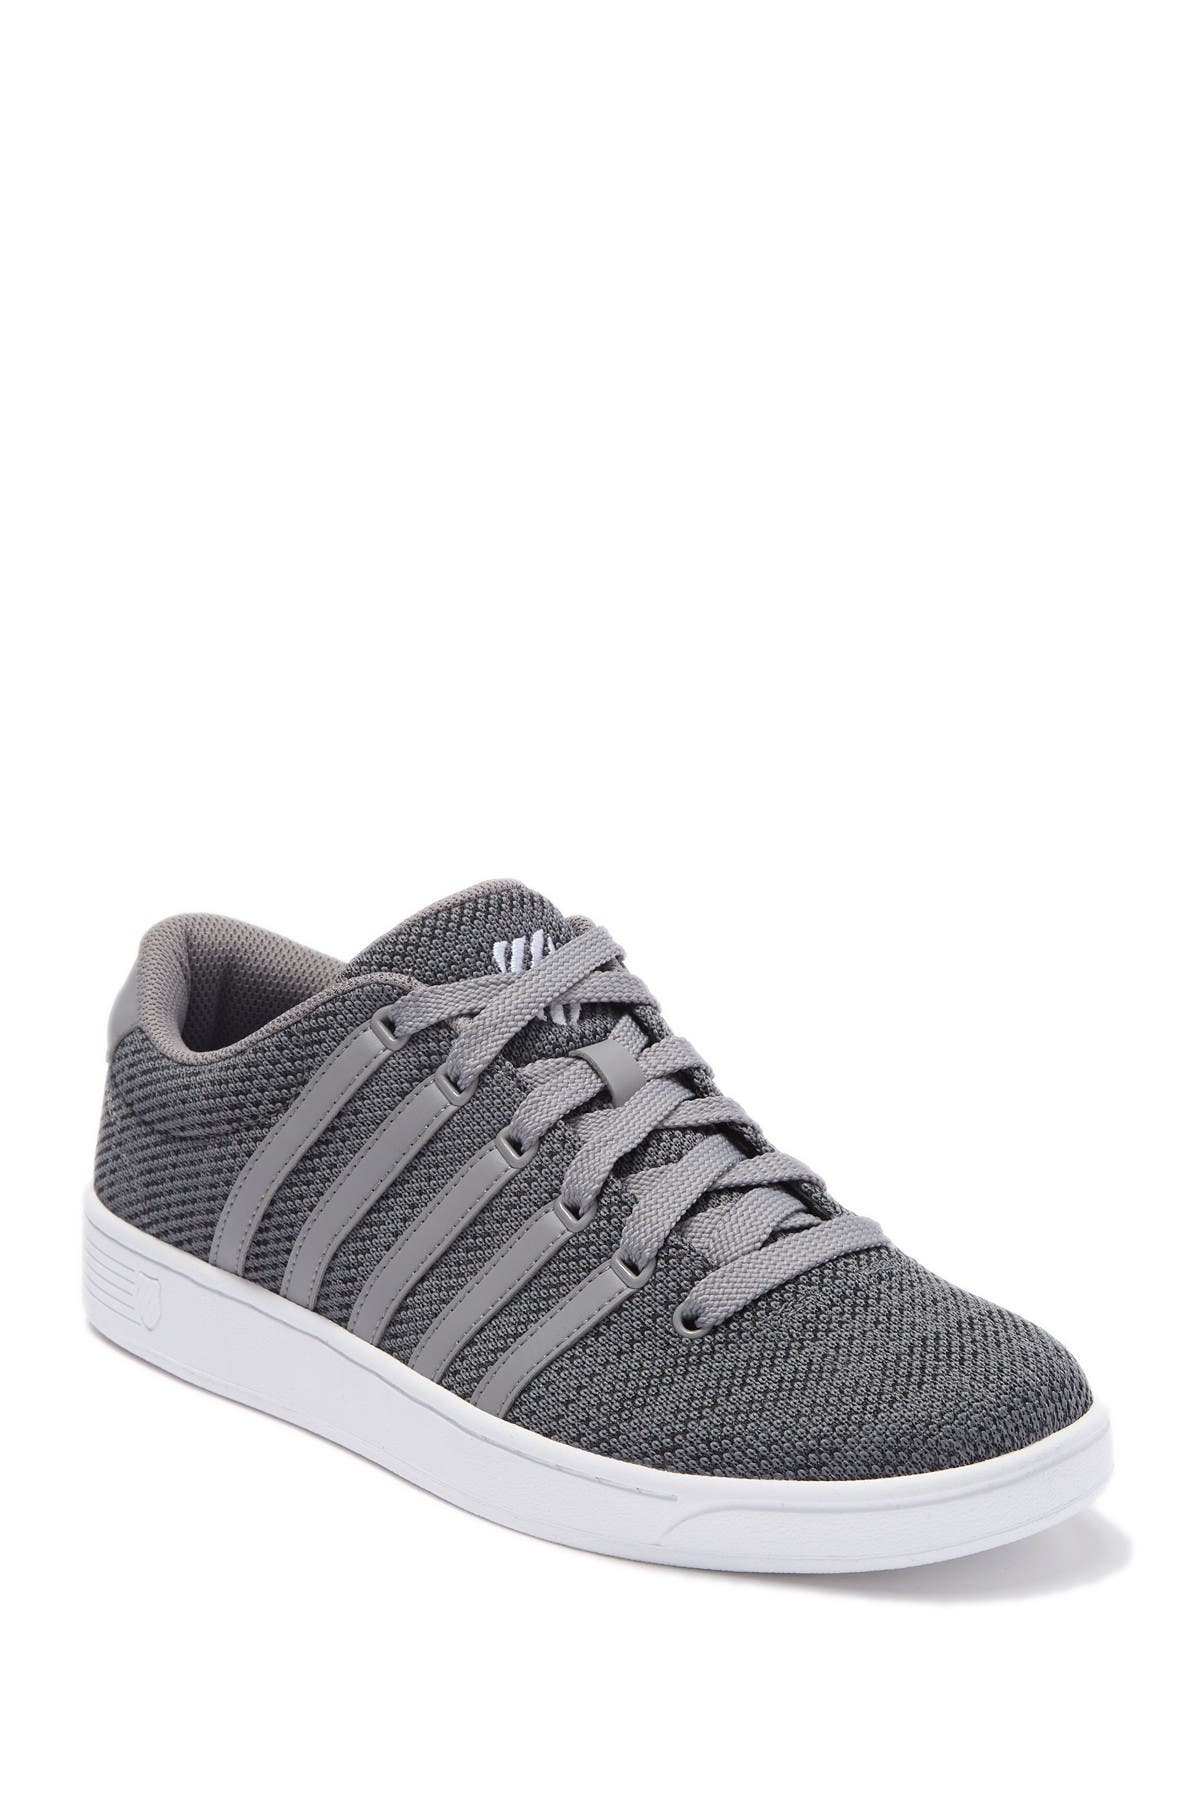 Image of K-Swiss Court Pro II Sneaker